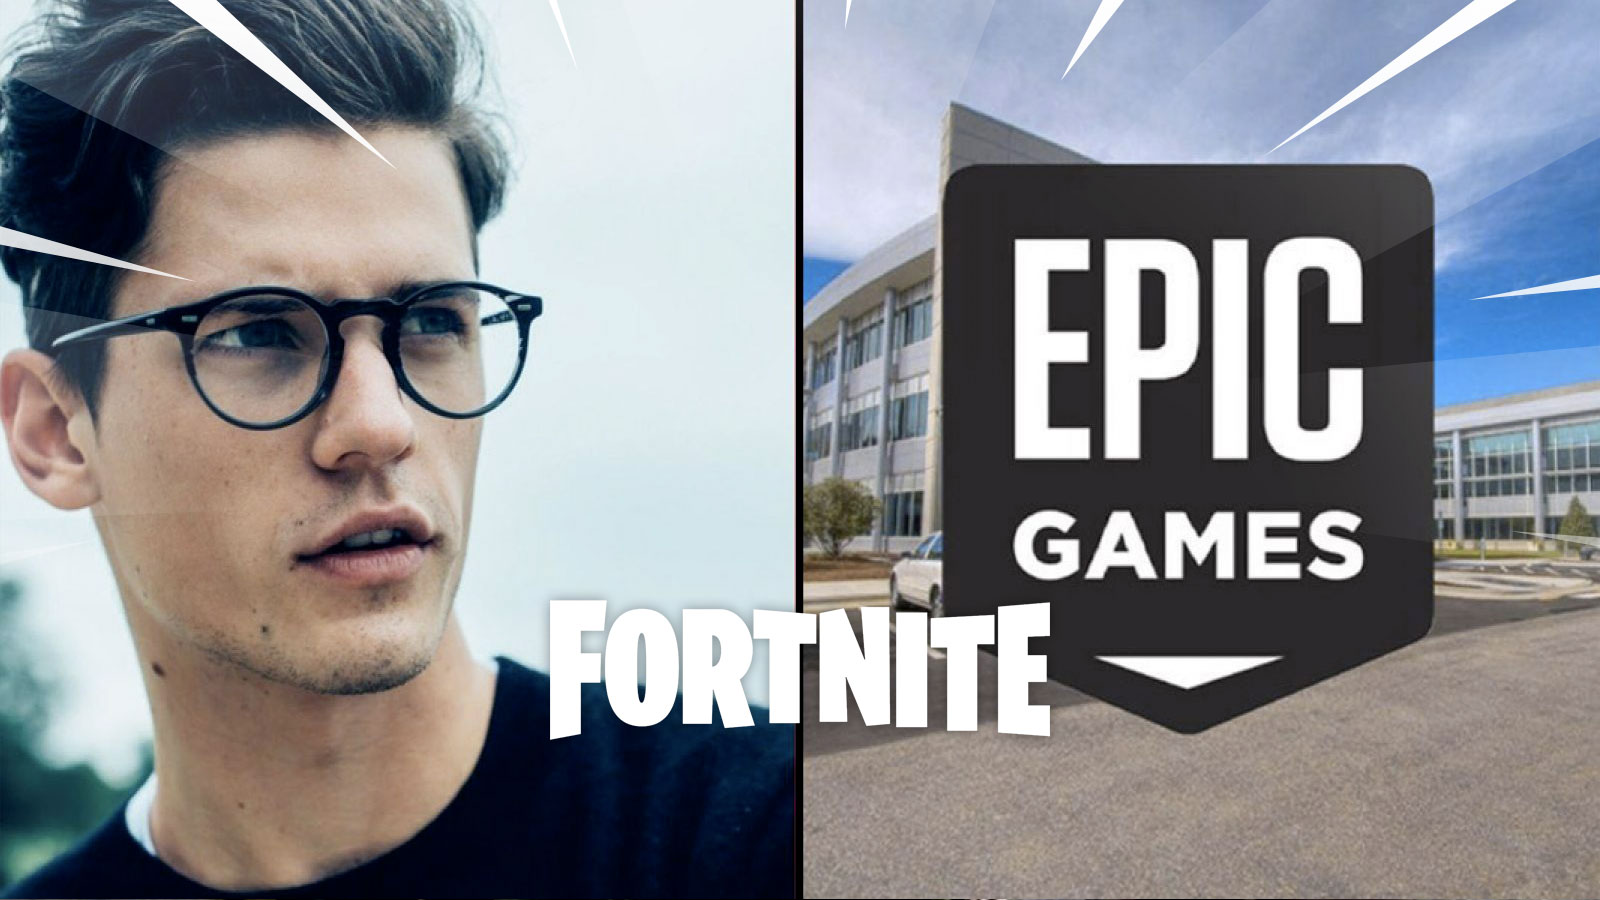 Nate Hill / Epic Games